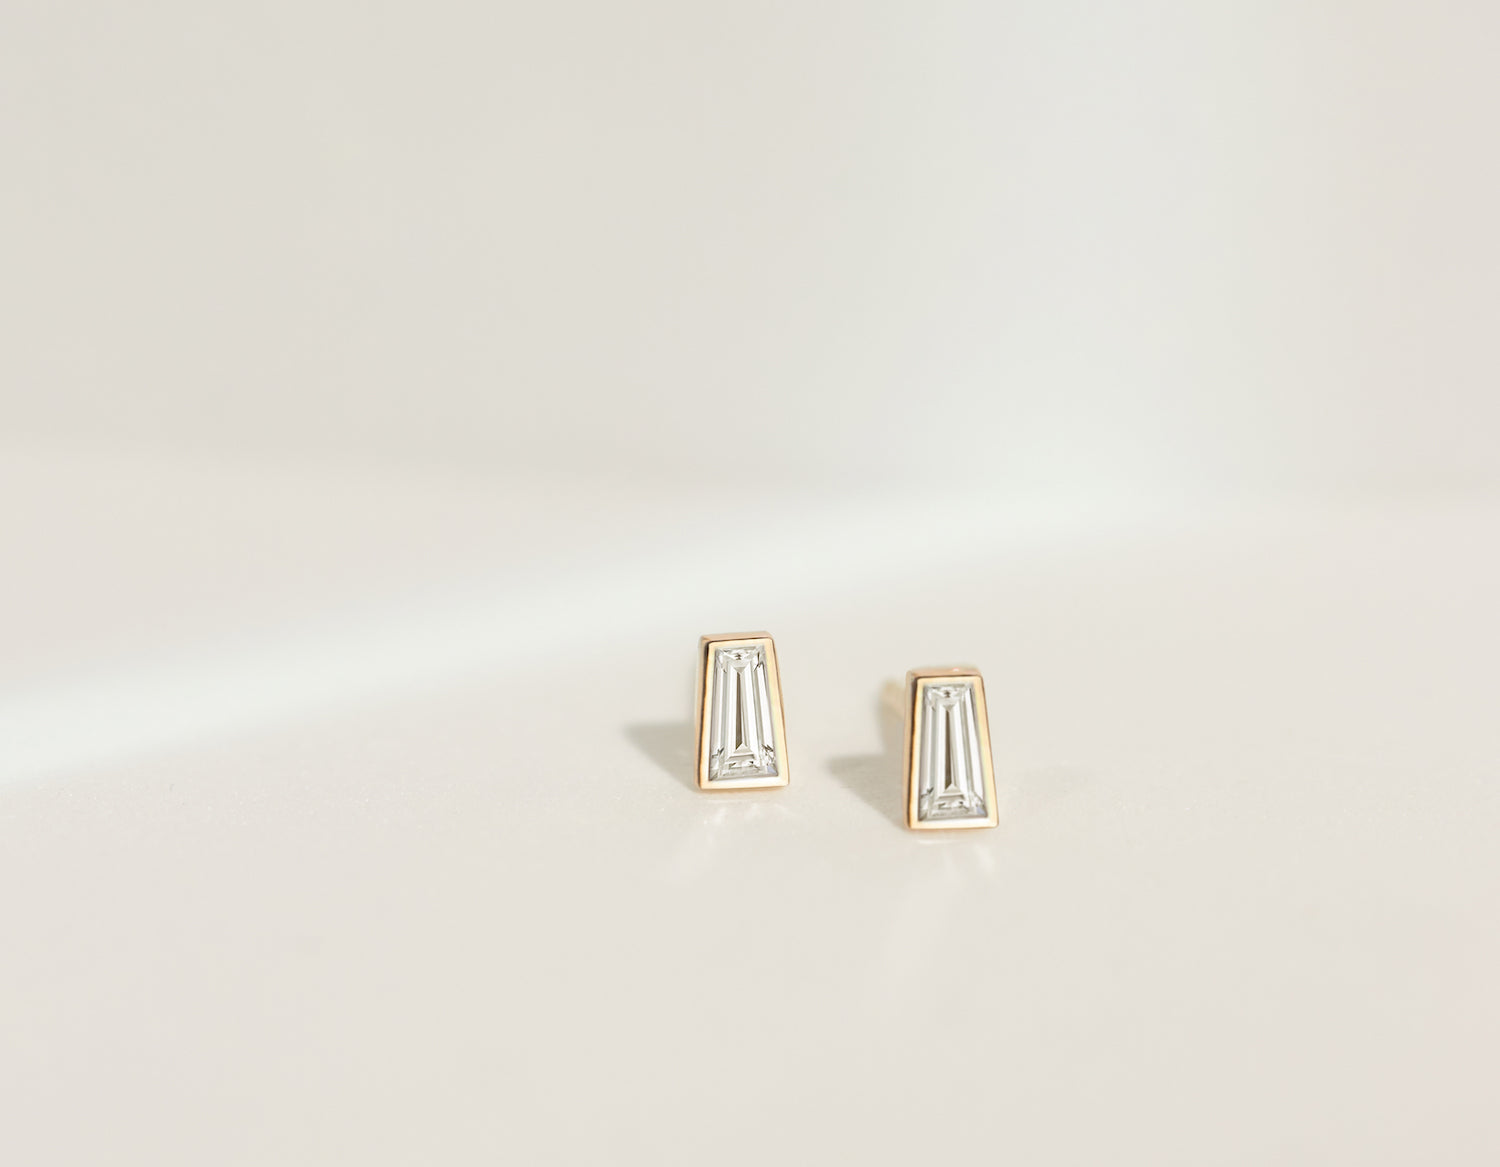 Vrai & Oro 14k solid yellow gold tapered Baguette diamond studs modern minimalist earrings